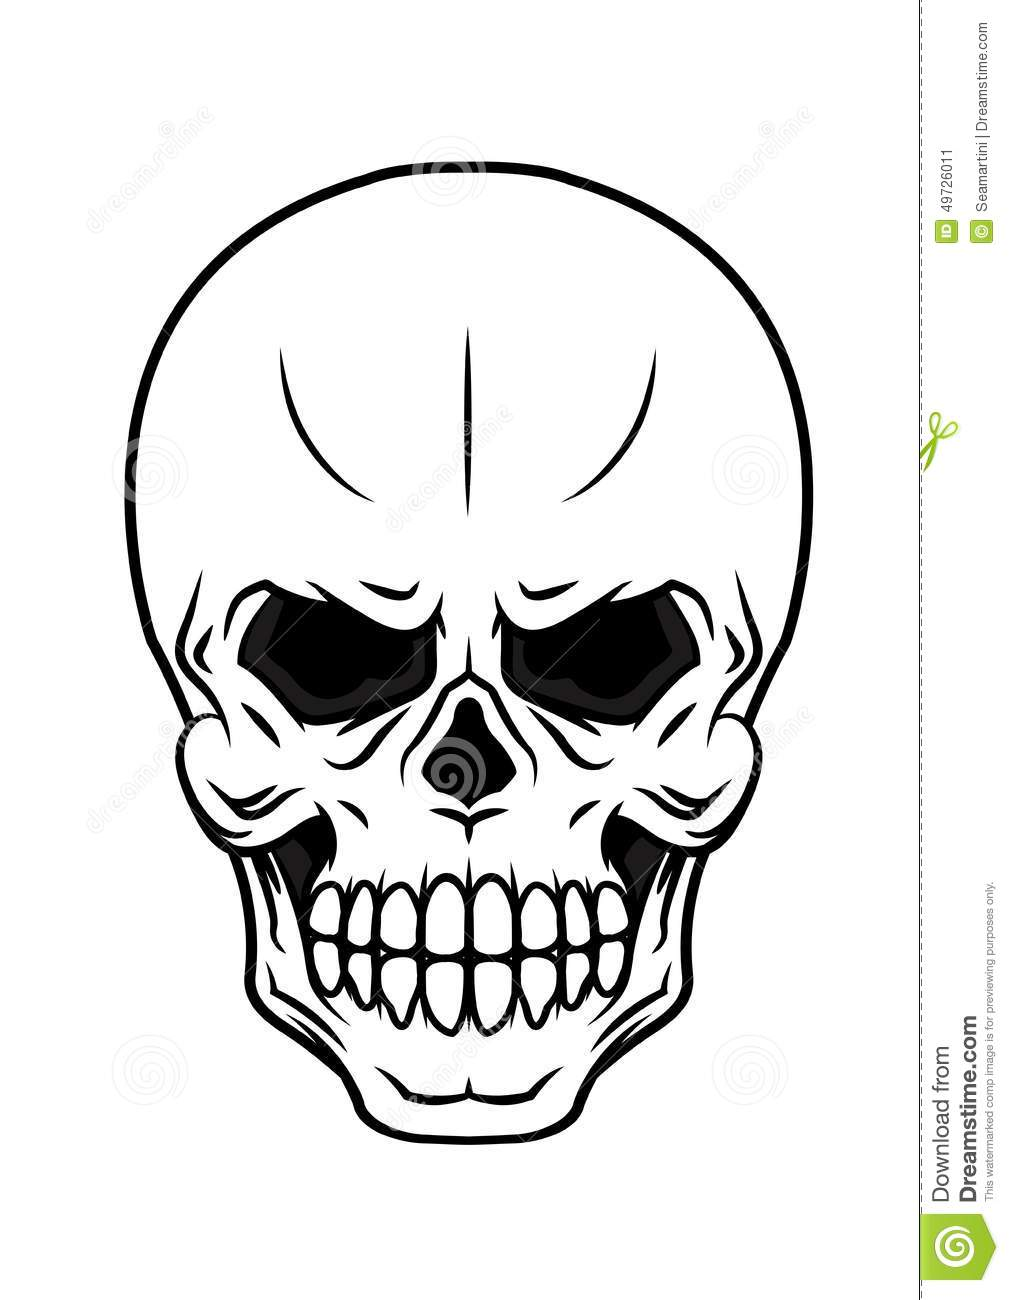 Danger Cartoon Skull Stock Vector - Image: 49726011